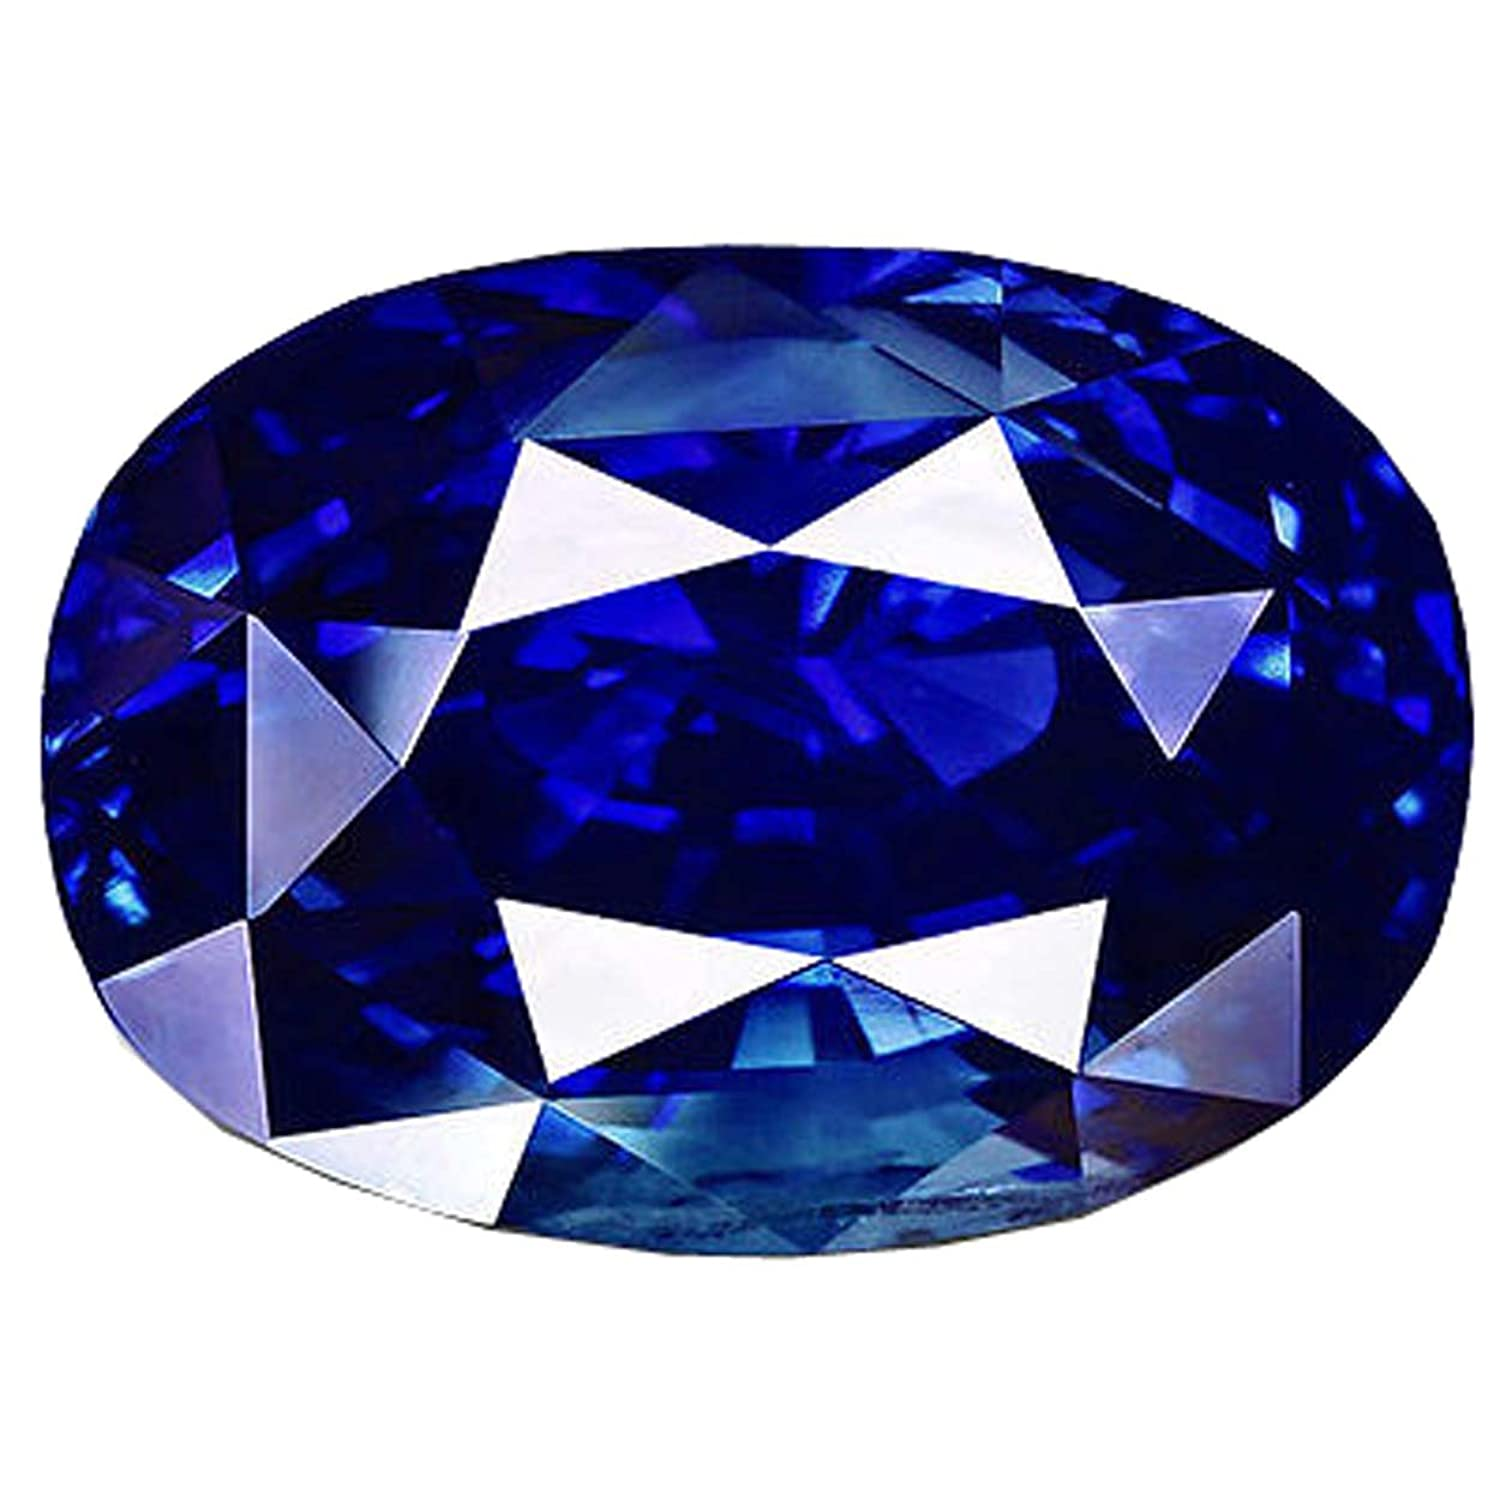 ajs blue at gems sapphire articles prices gemstones